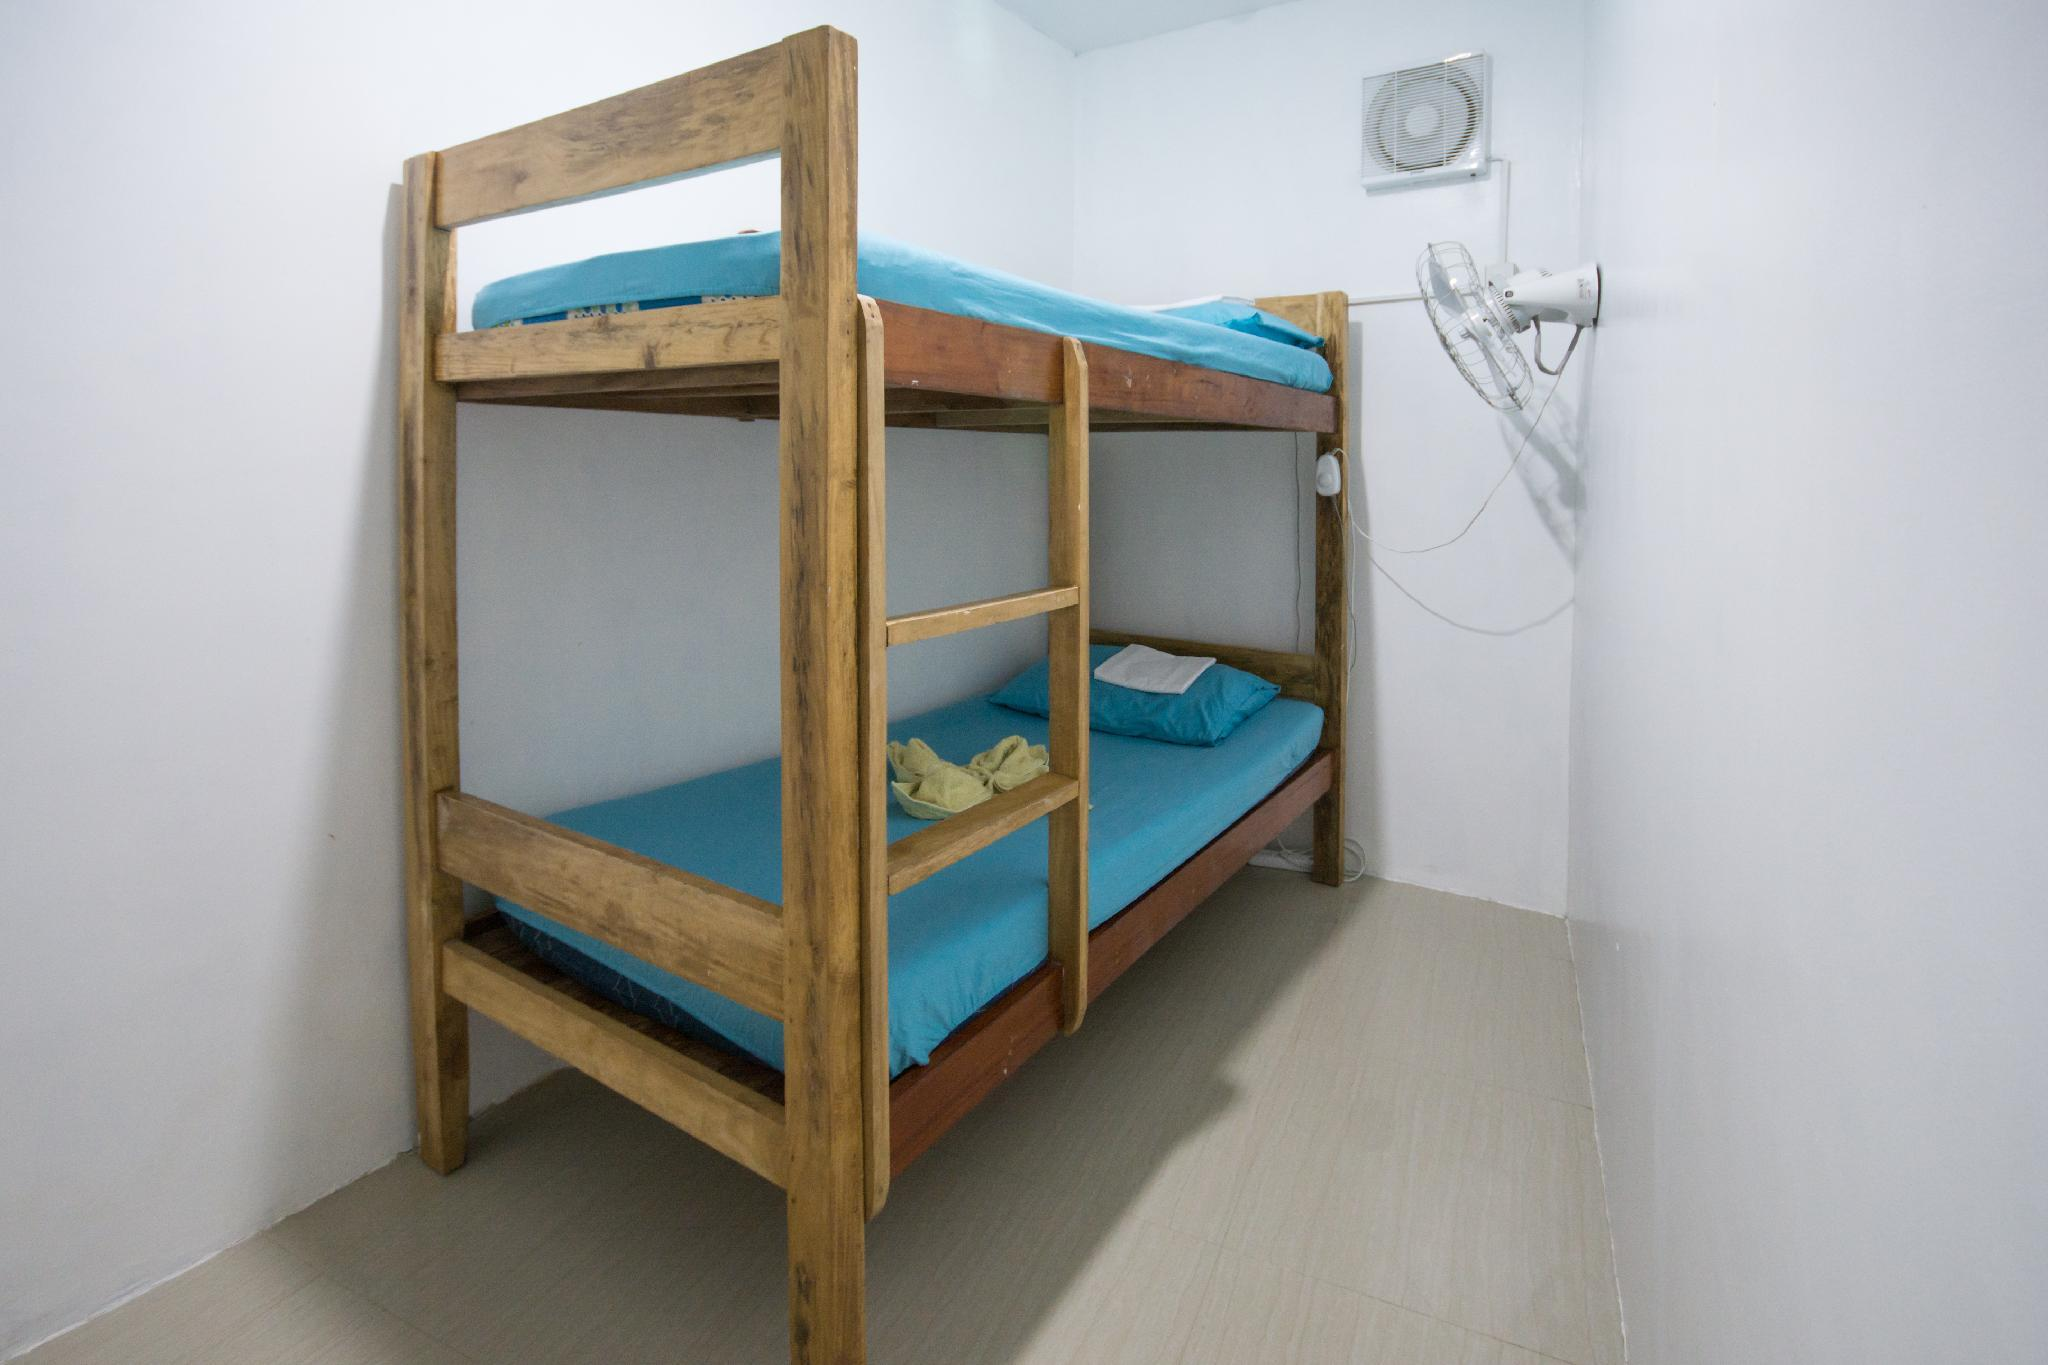 Quarto com ventilador (Fan Room)